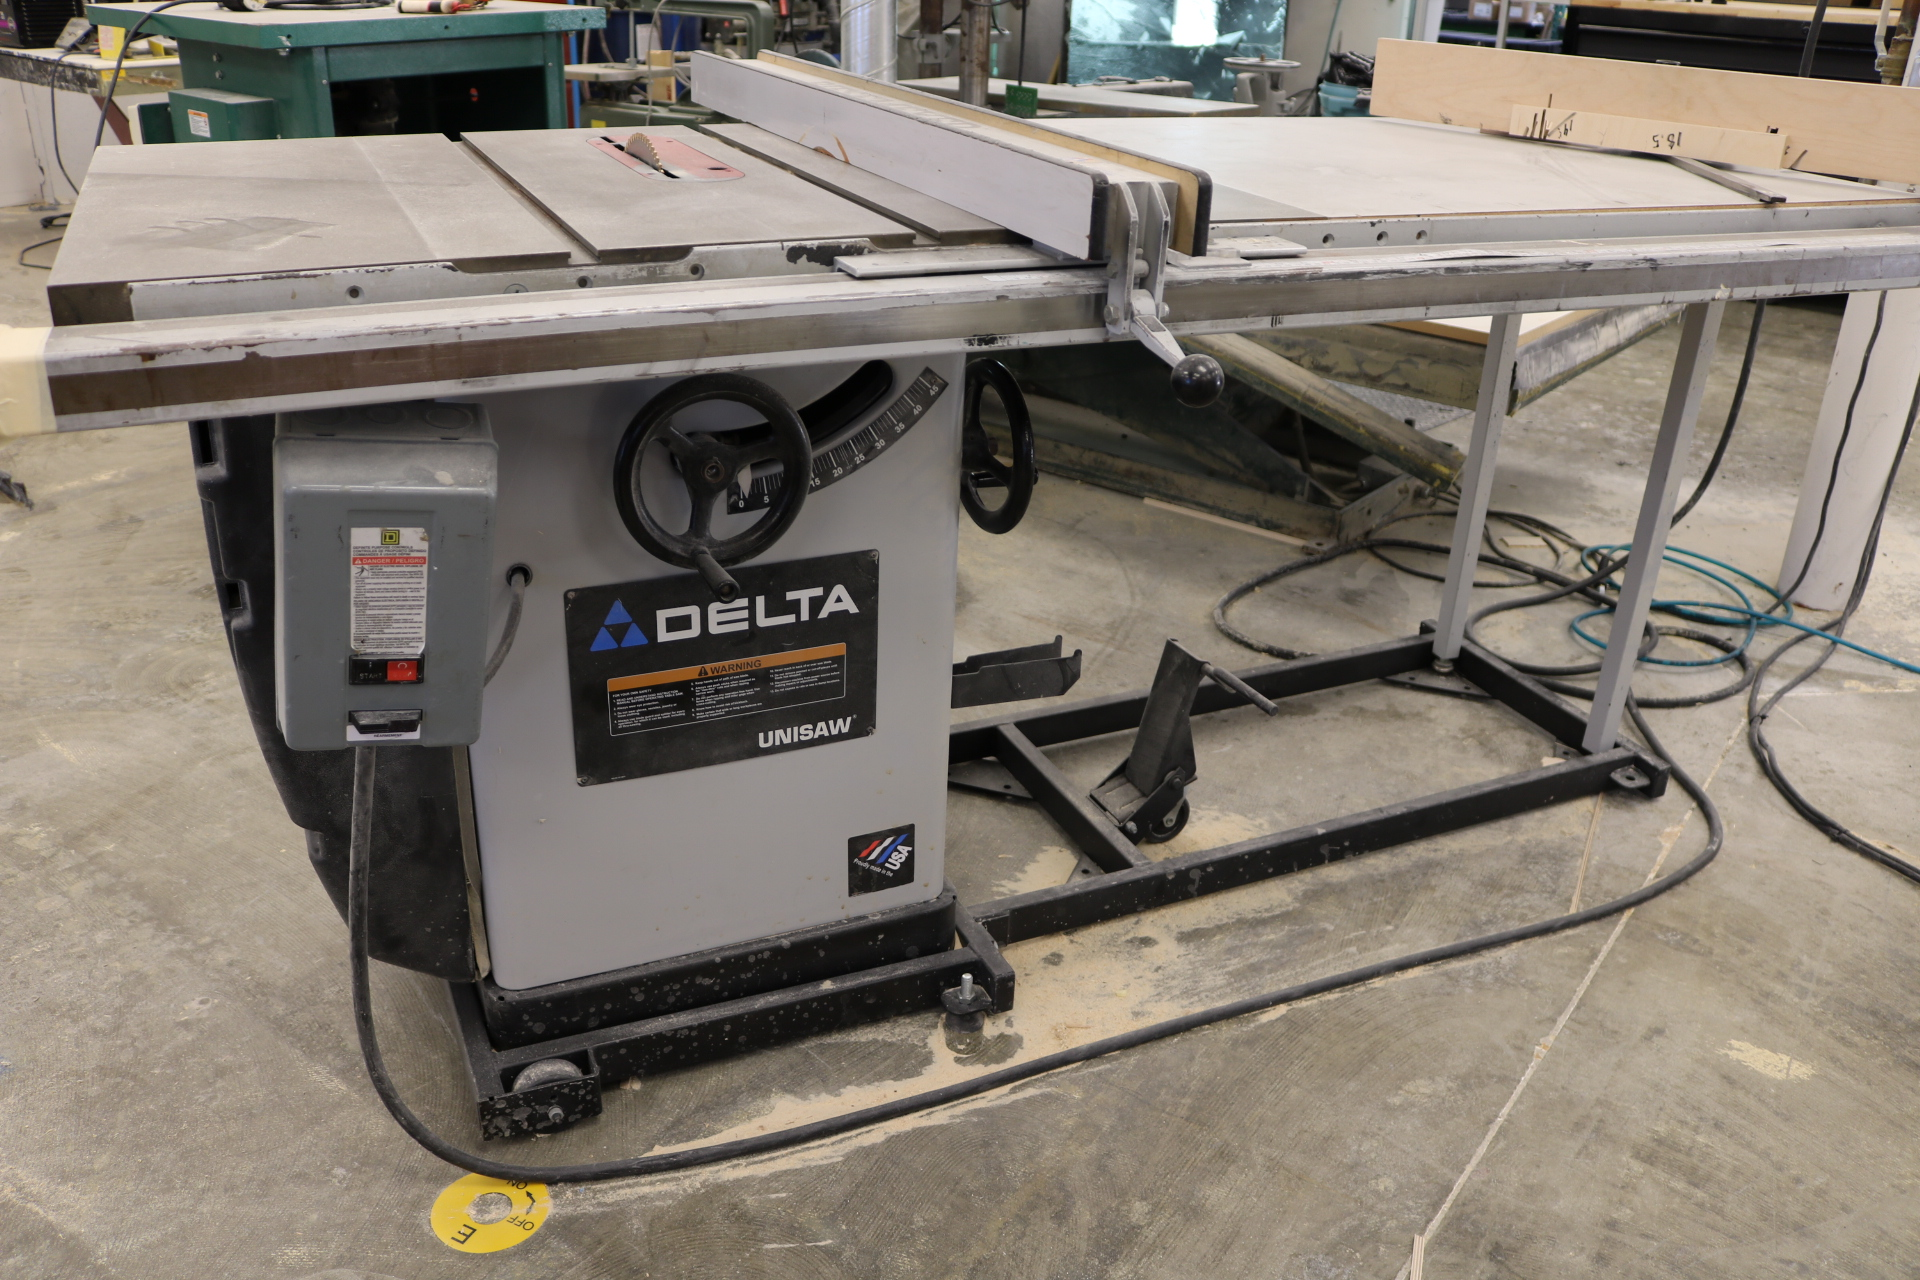 PRO AUDIO SPEAKER MANUFACTURER, 2018 LAGUNA ROUTERS, SCHELLING PANEL SAW, TOYOTA & HYSTER FORKLIFTS - Image 9 of 50